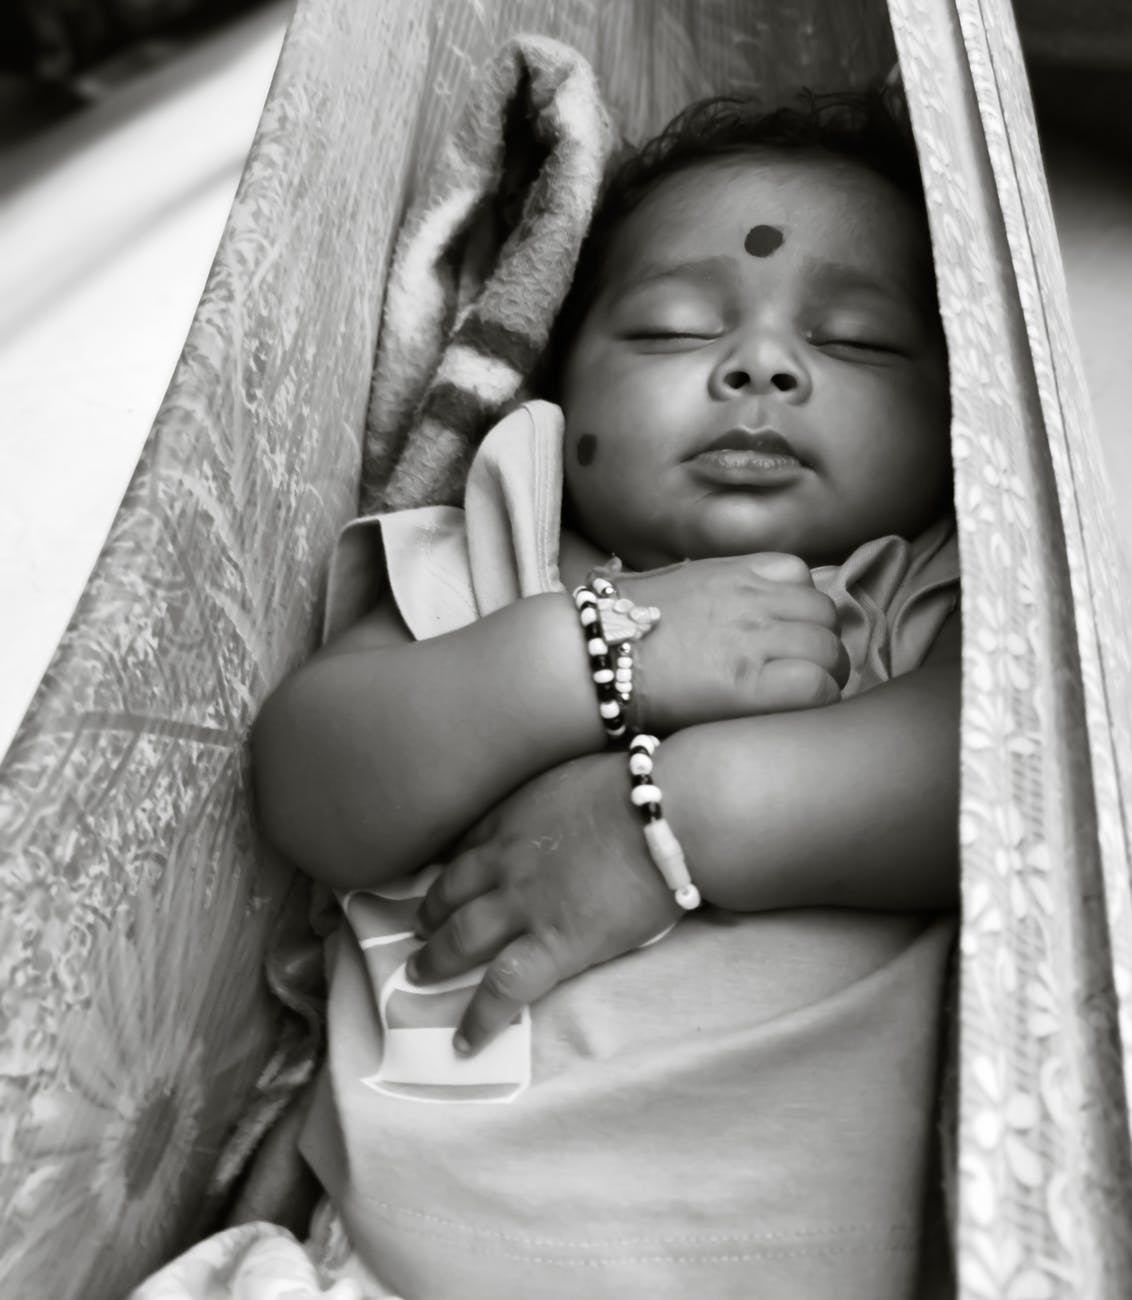 grayscale photo of baby lying on hammock